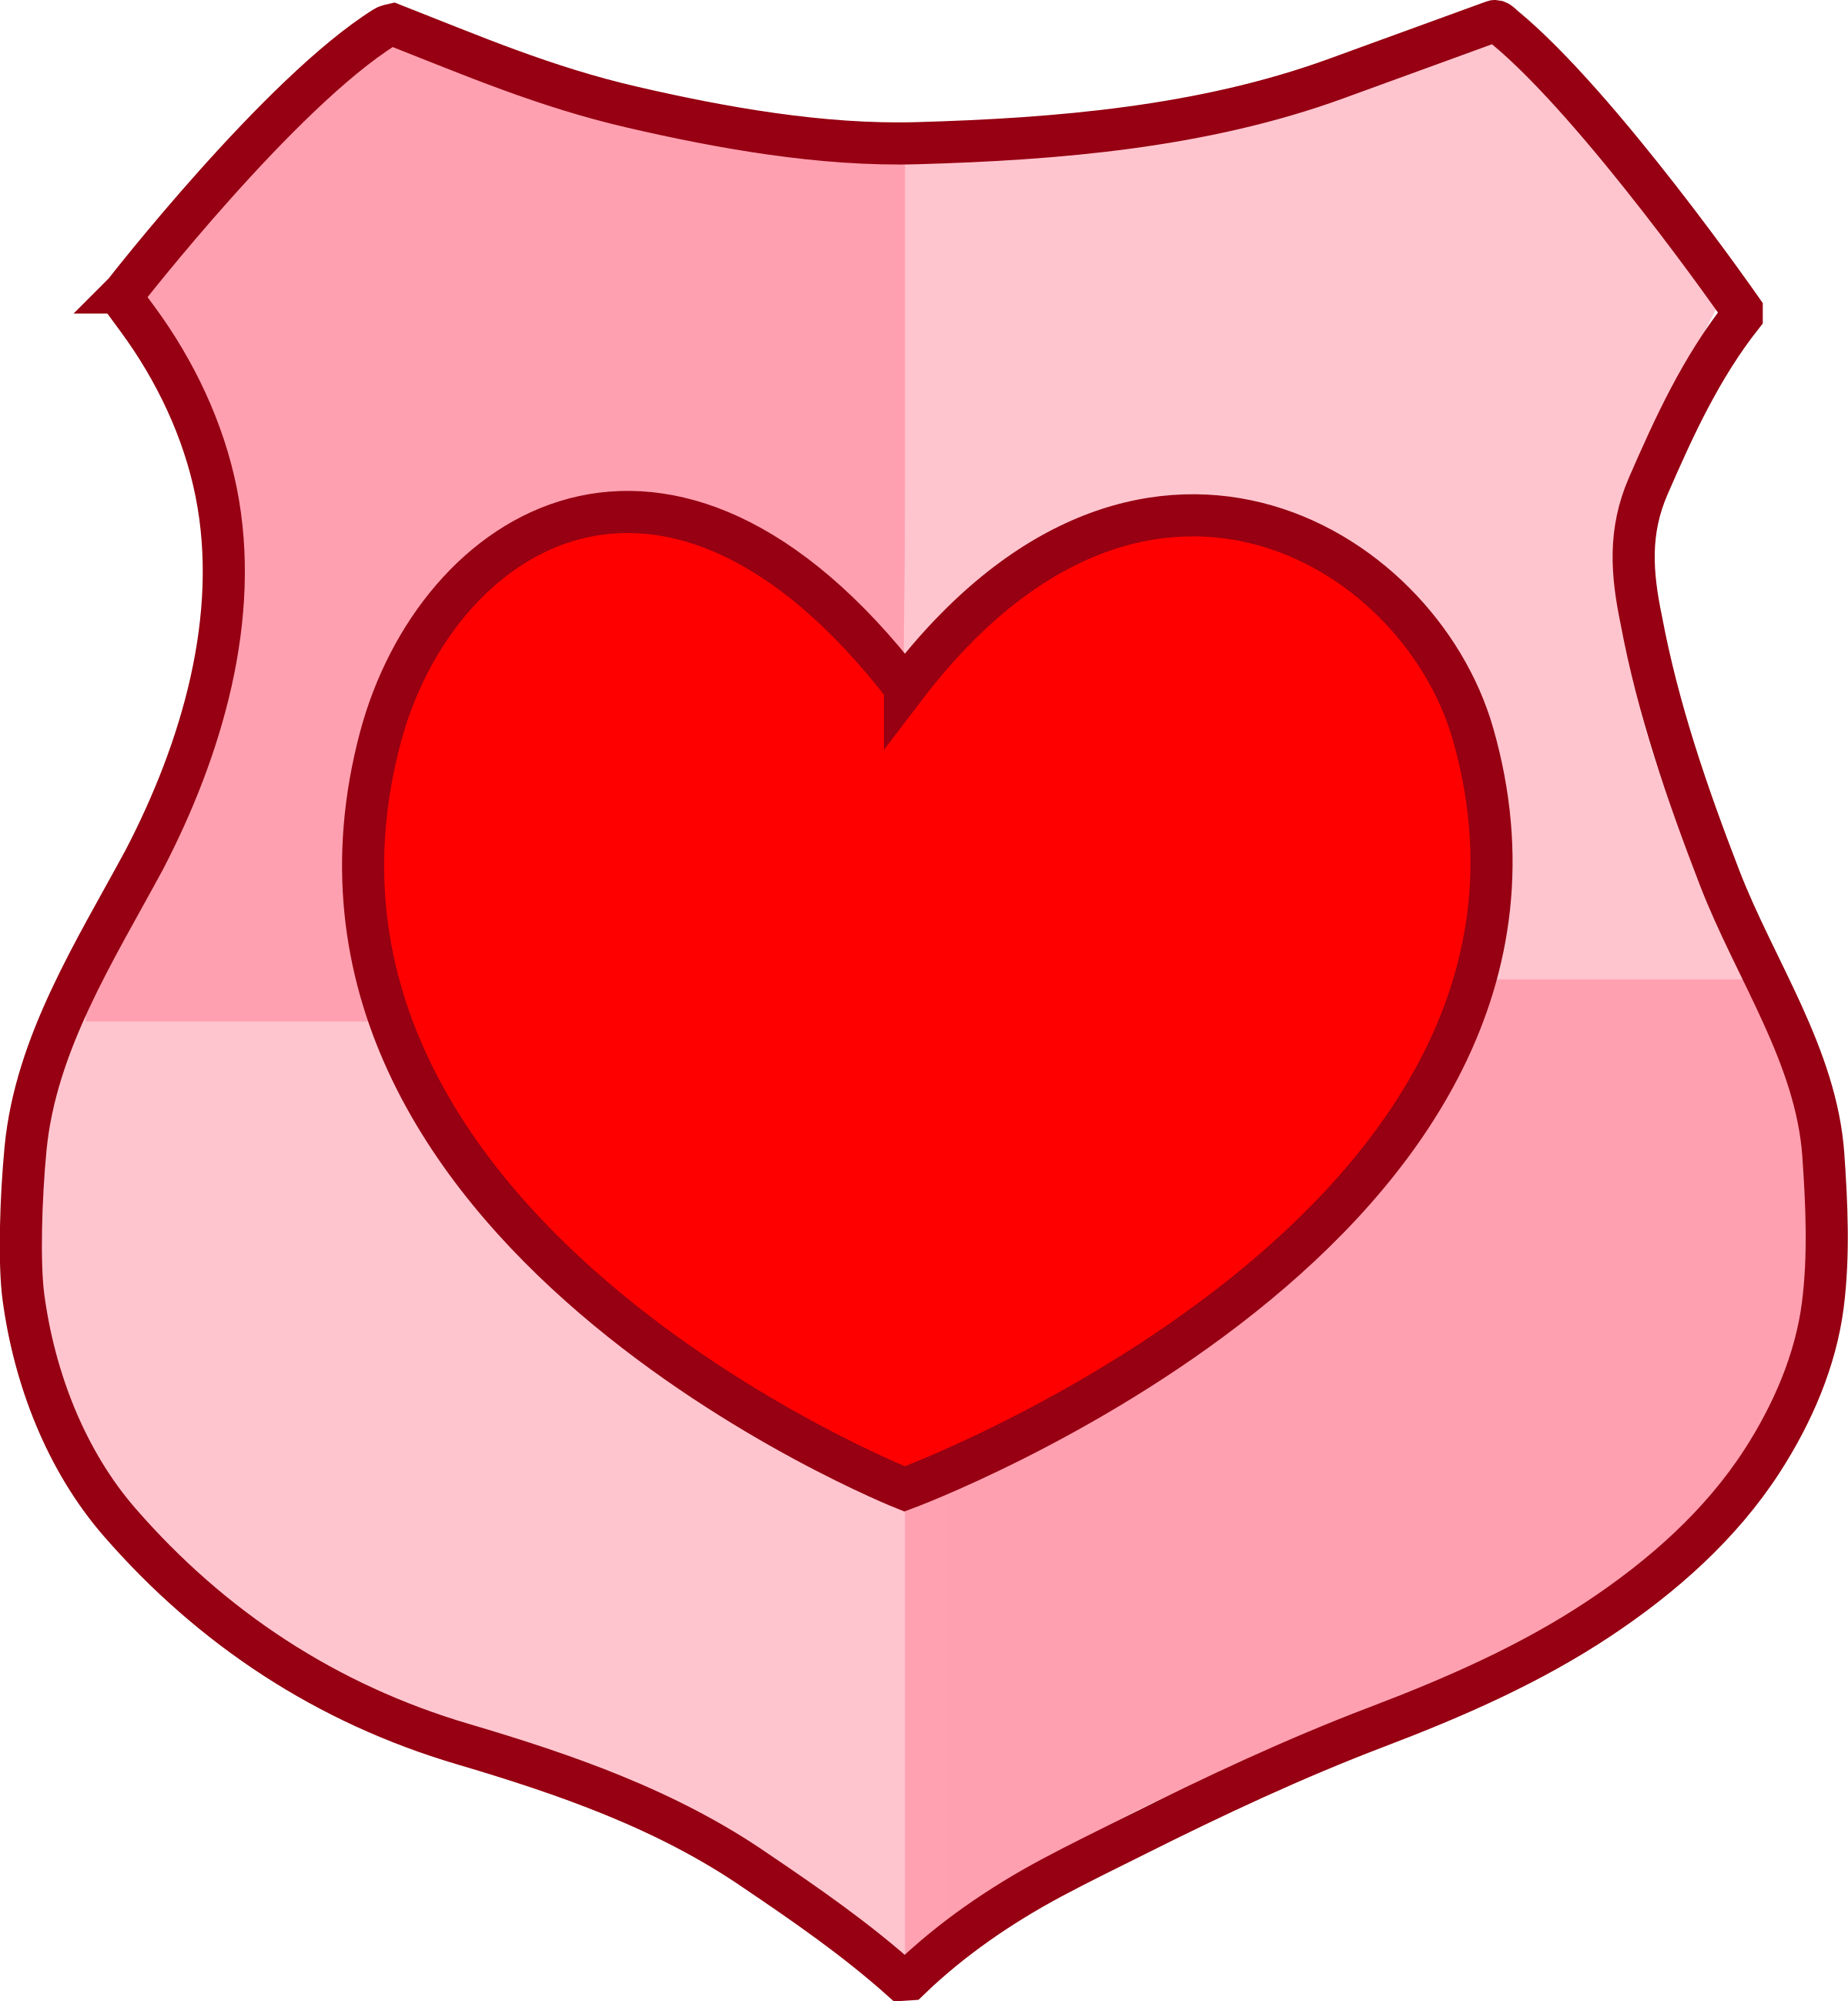 Shield big image png. Love clipart icon